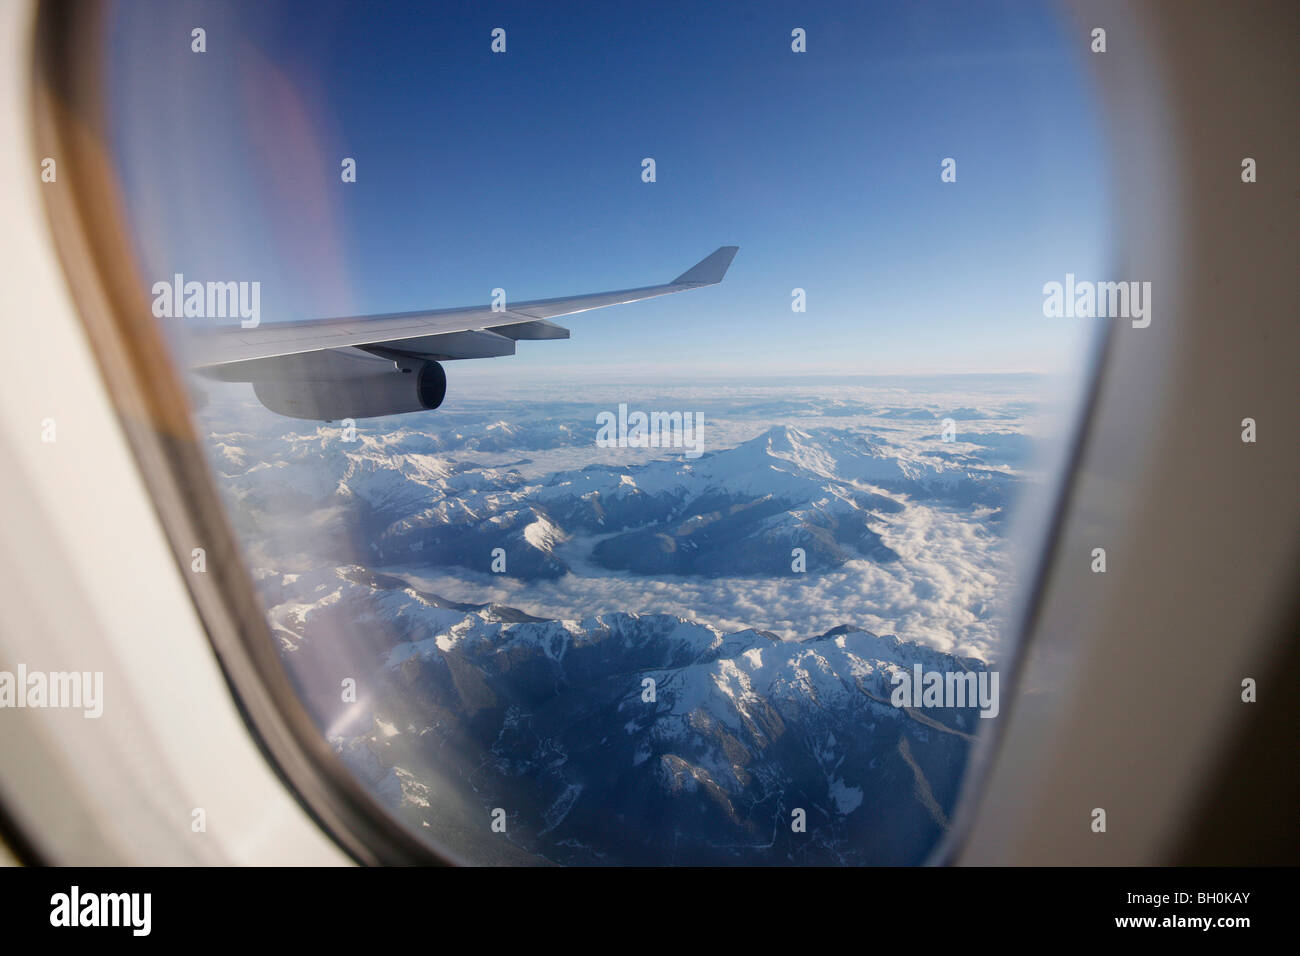 View through airplane window over Rocky Mountains, Oregon, USA - Stock Image